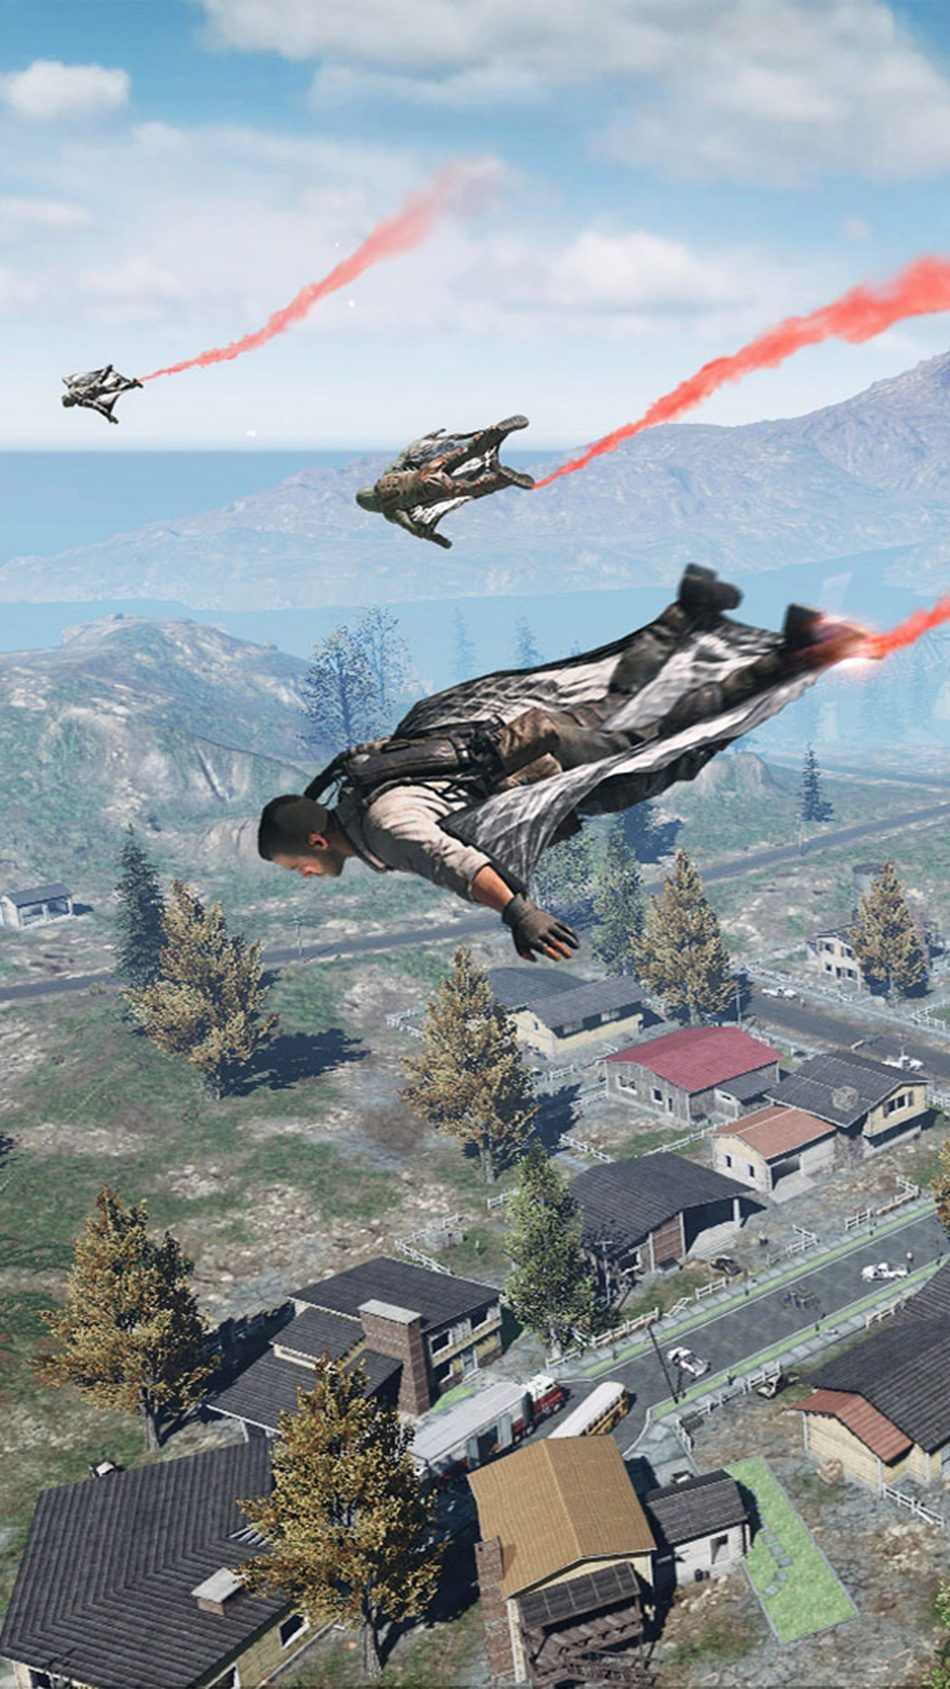 Jump From The Plane Call Of Duty Mobile 4k Ultra Hd Mobile Wallpaper Fondos Militares Militar Fondos